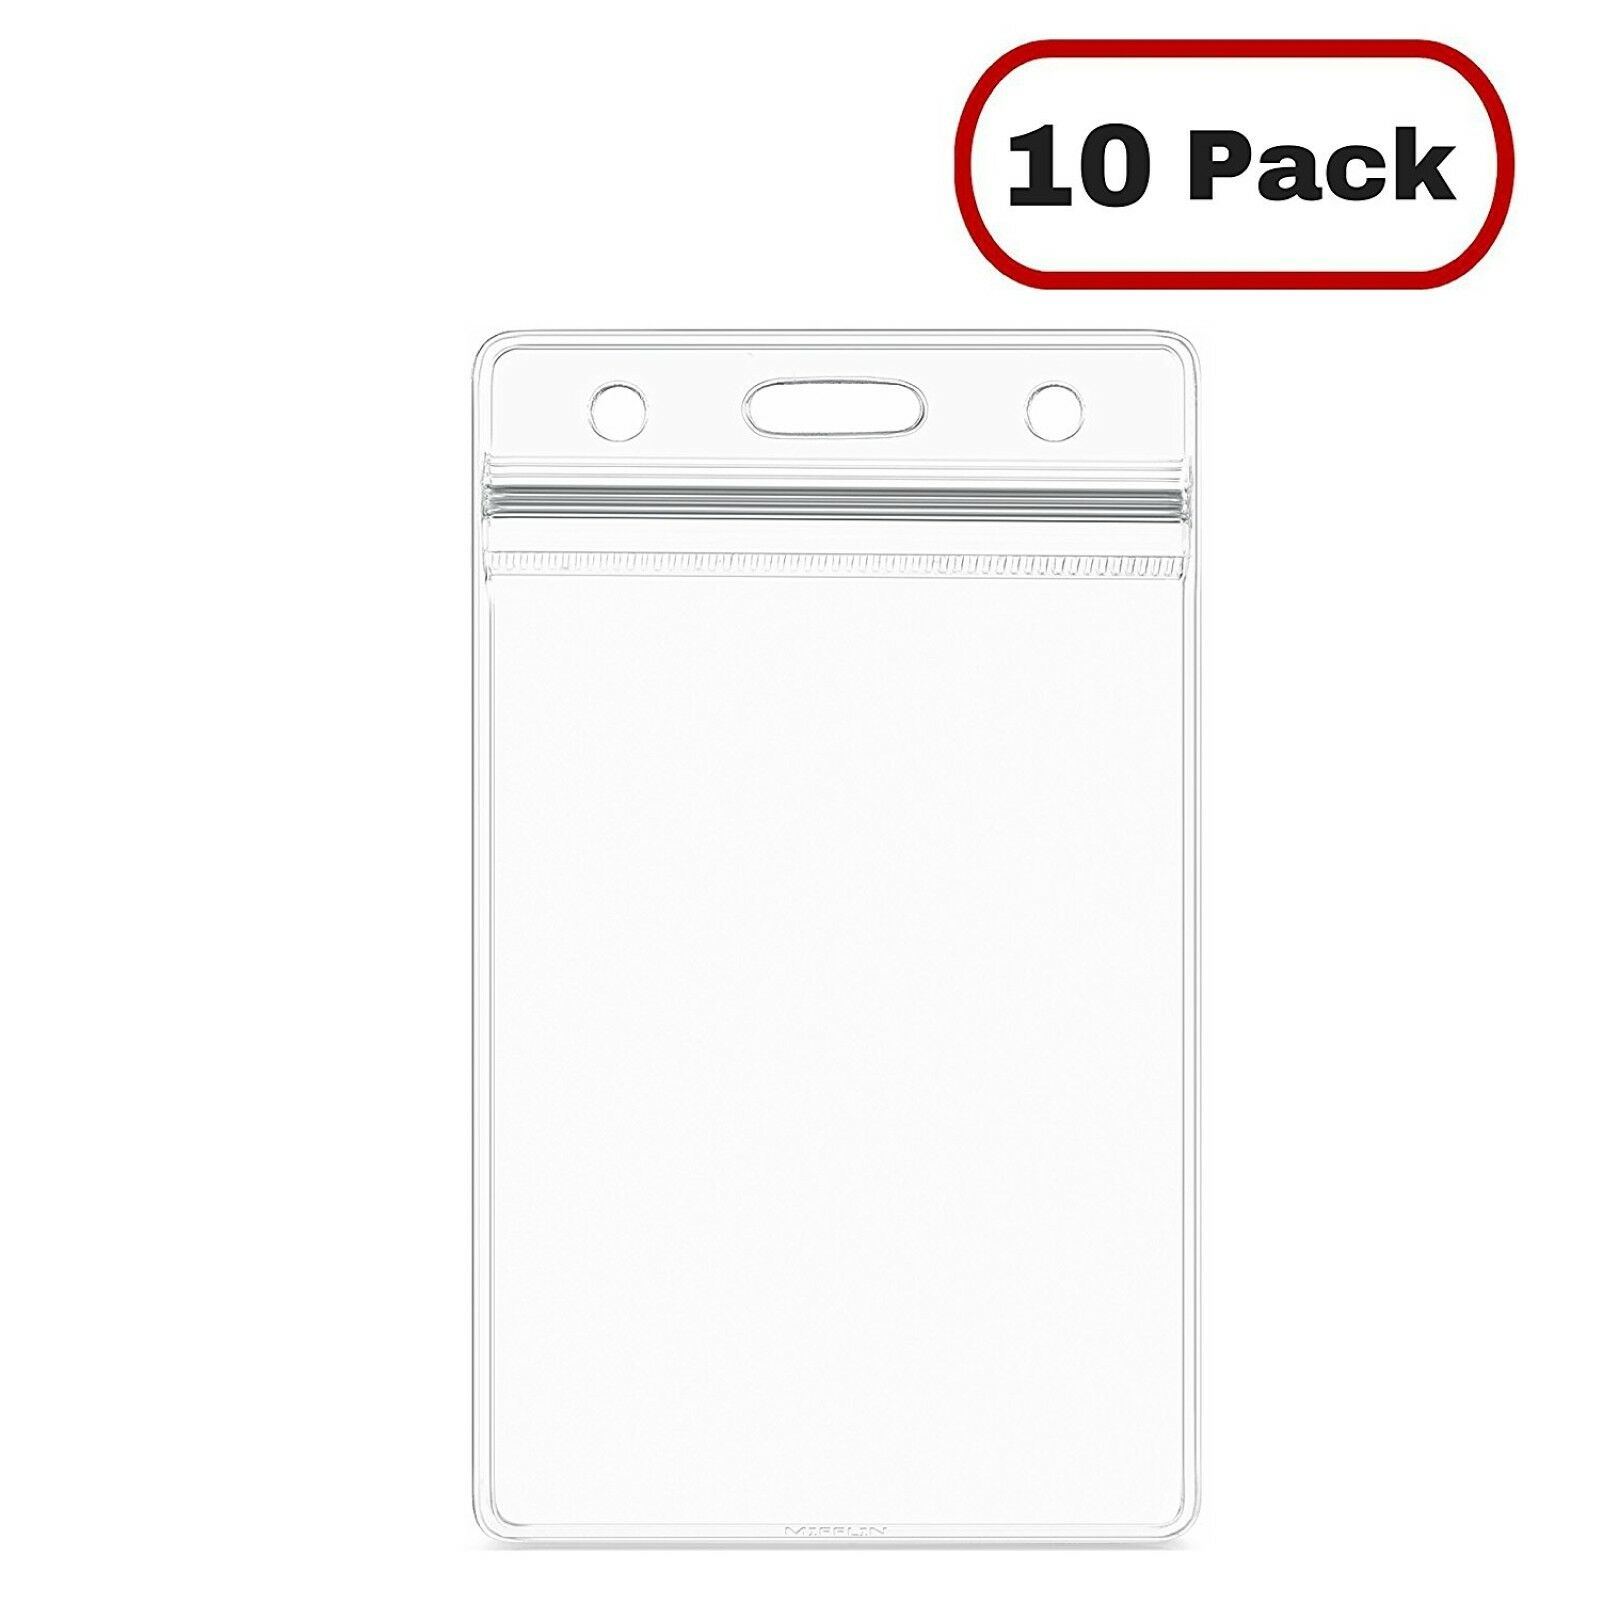 Id card holder clear plastic badge resealable waterproof business id card holder clear plastic badge resealable waterproof business case 10pcs 1 of 10free shipping colourmoves